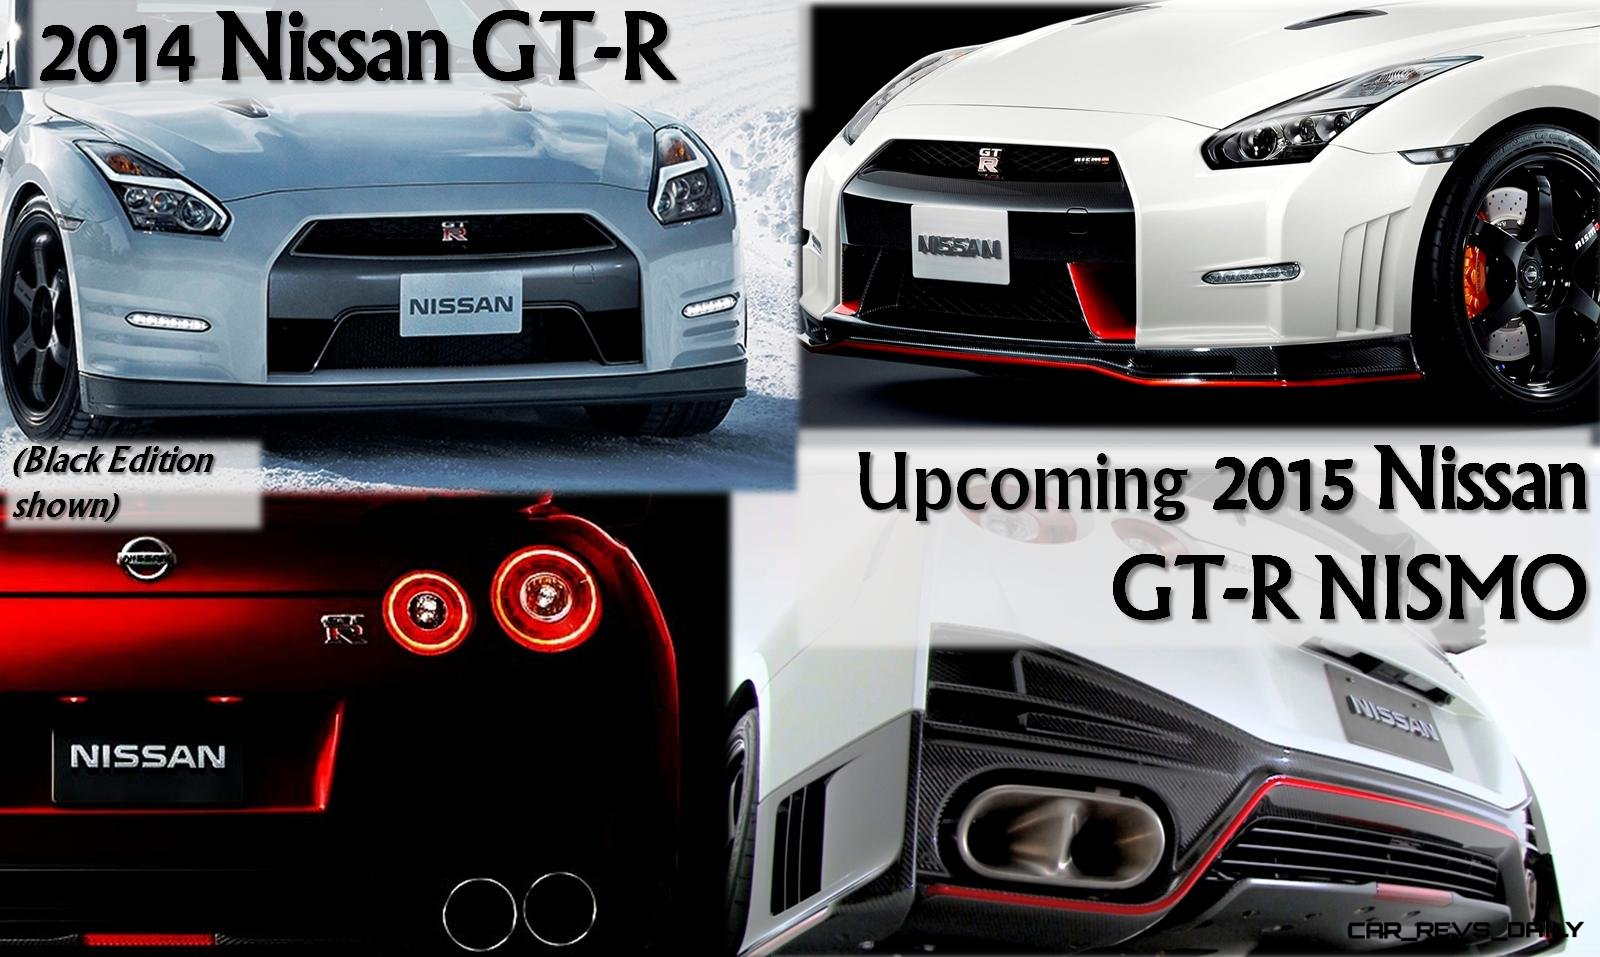 Nissan GT R   Spotters Guidebook To 2014 Updates And 2015 NISMO Model